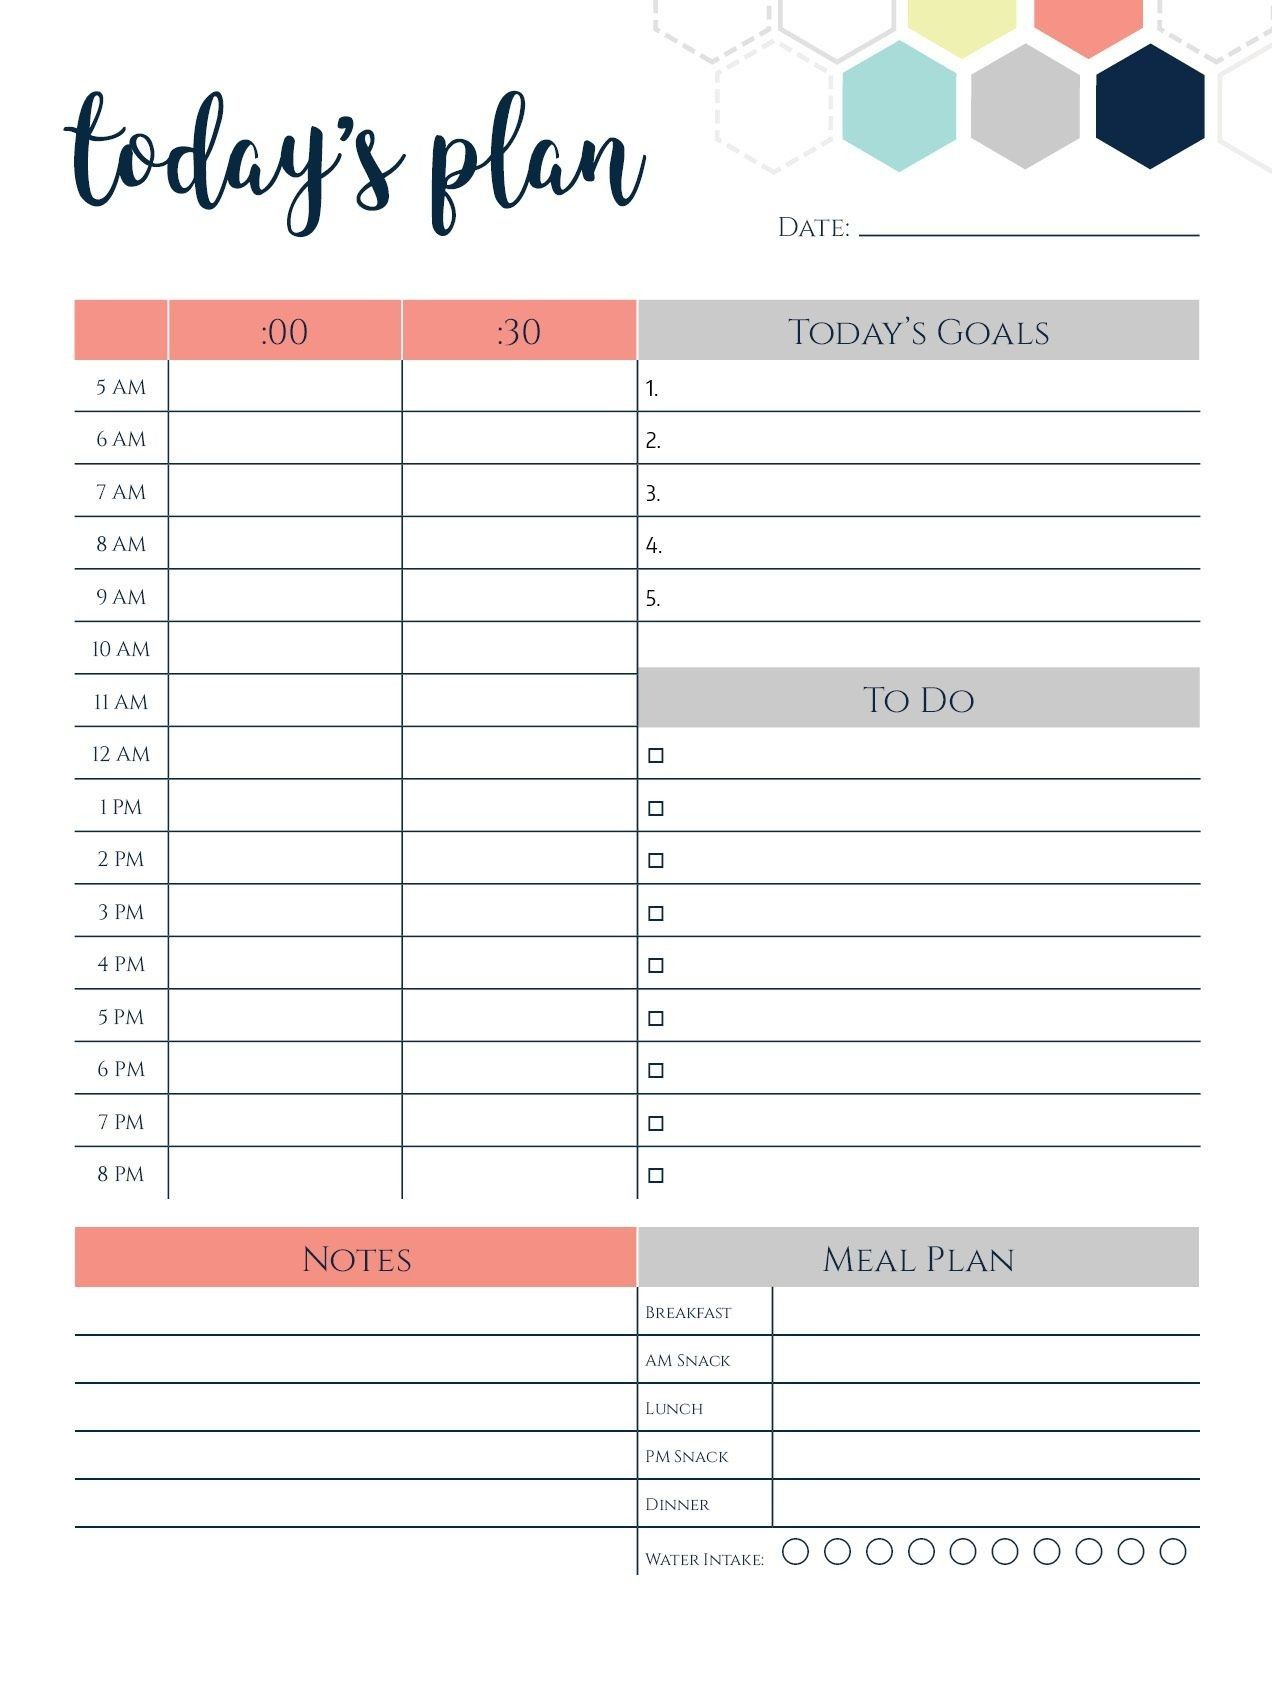 daily calendar template 2018 today u0026 39  s plan  with images